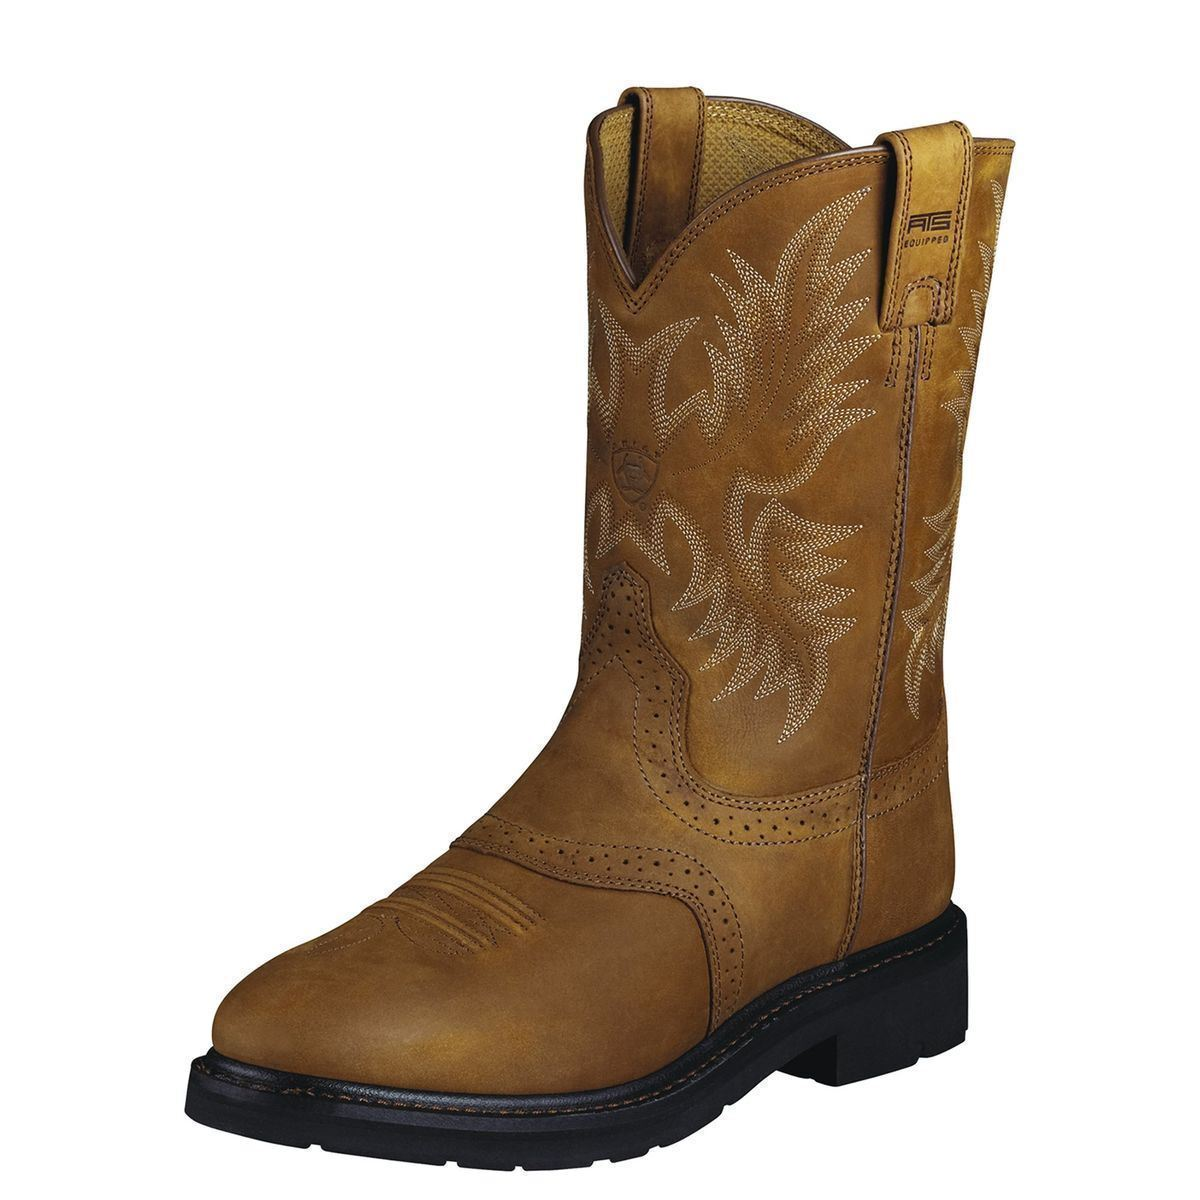 Uomo ARIAT SIERRA SADDLE SOFT TOE WESTERN WORK BOOTS 10002304 10002304 BOOTS 83275d